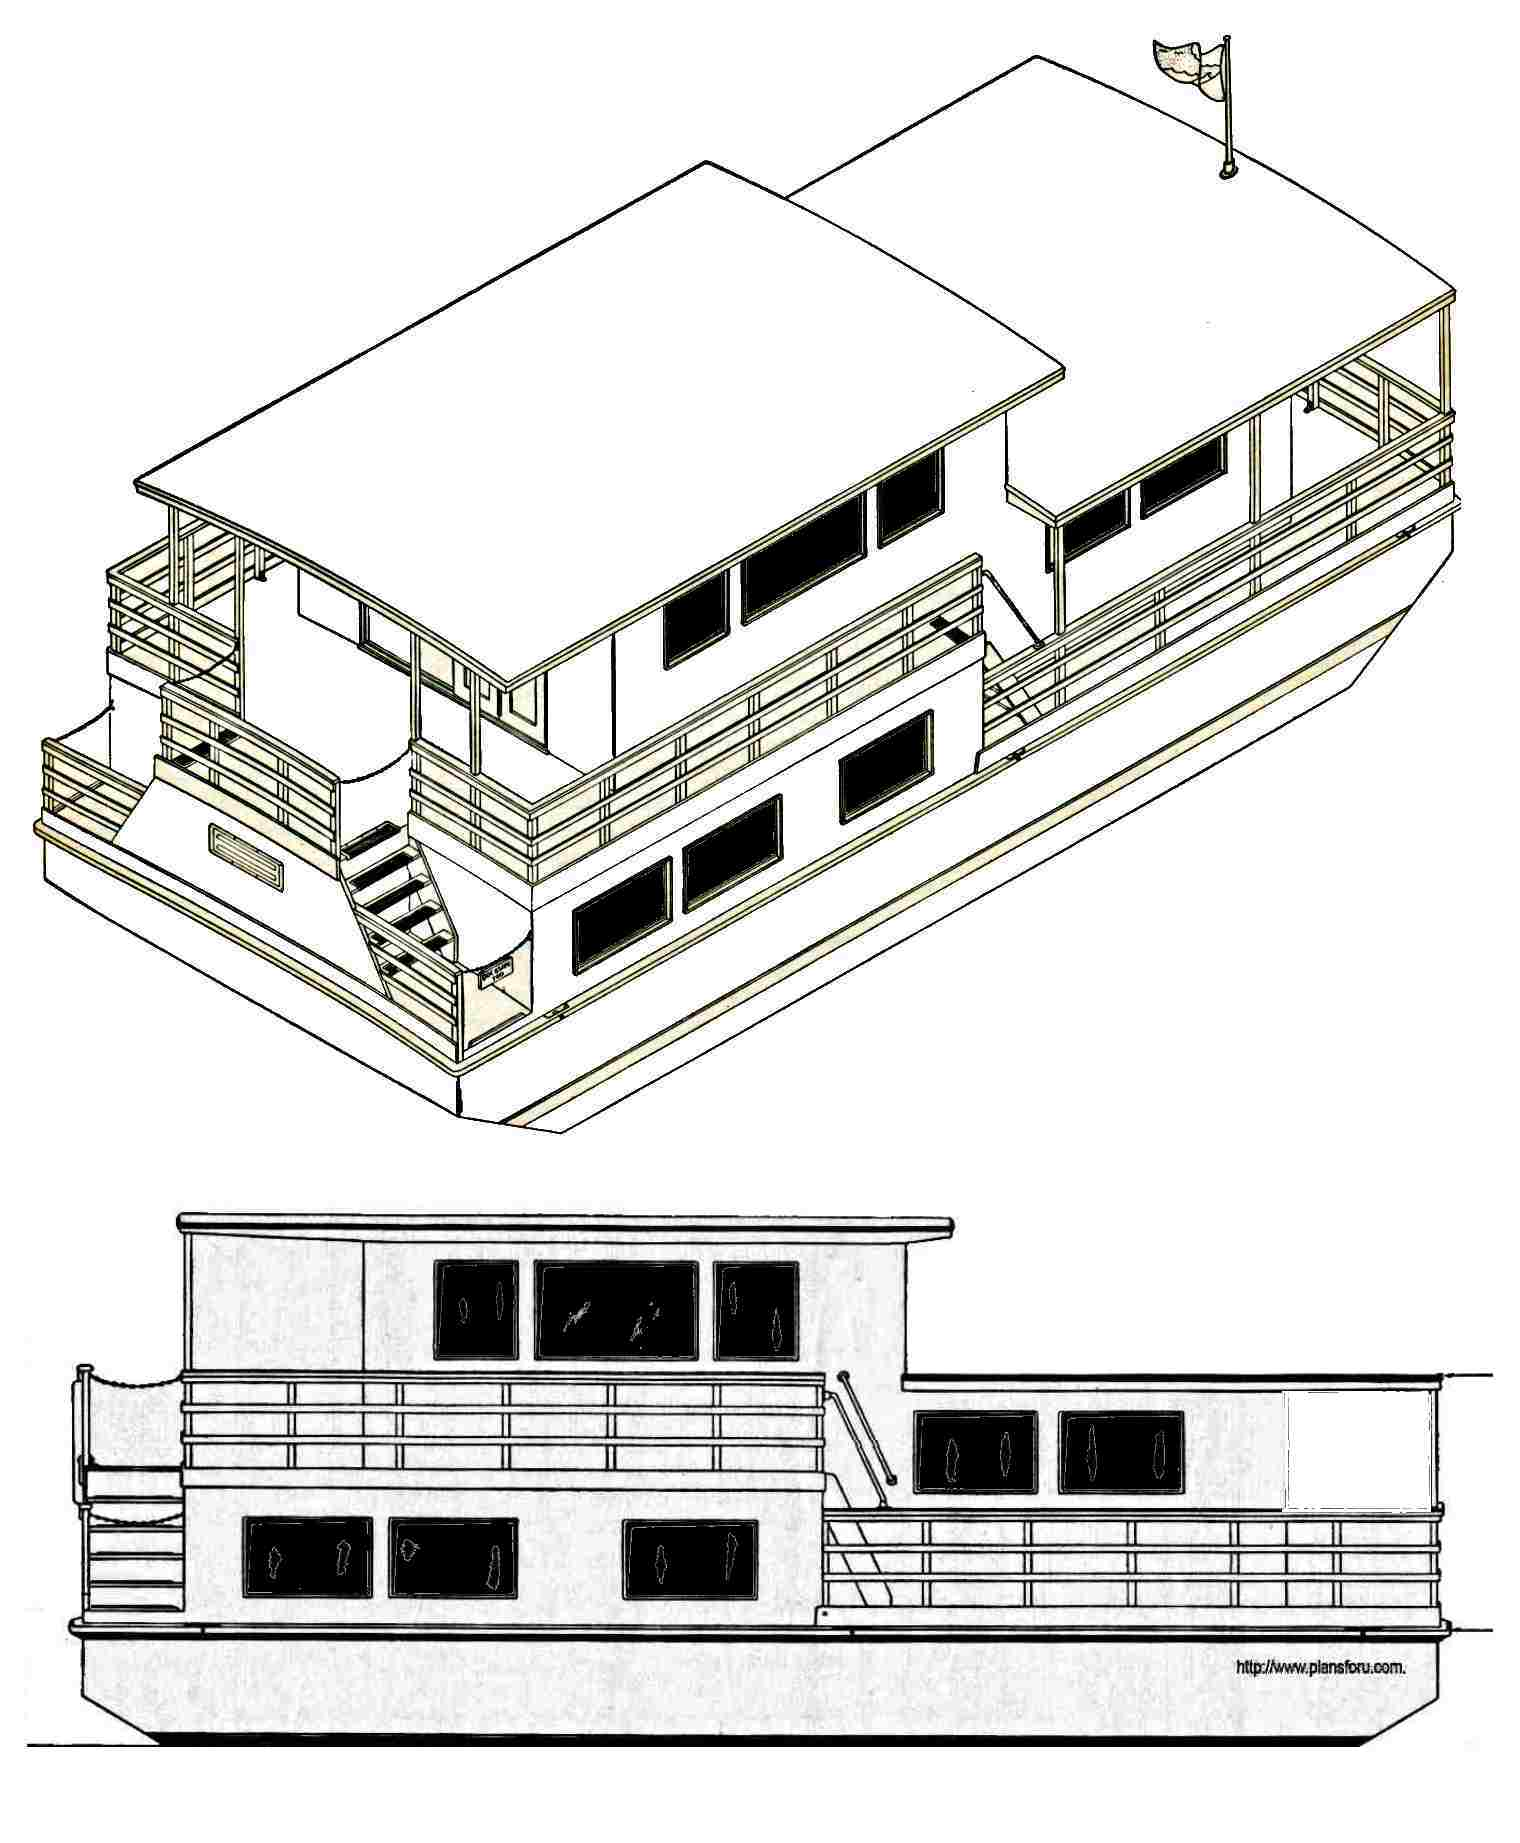 hight resolution of 1520x1843 houseboats funboats pontoon boats pontoon boat drawing